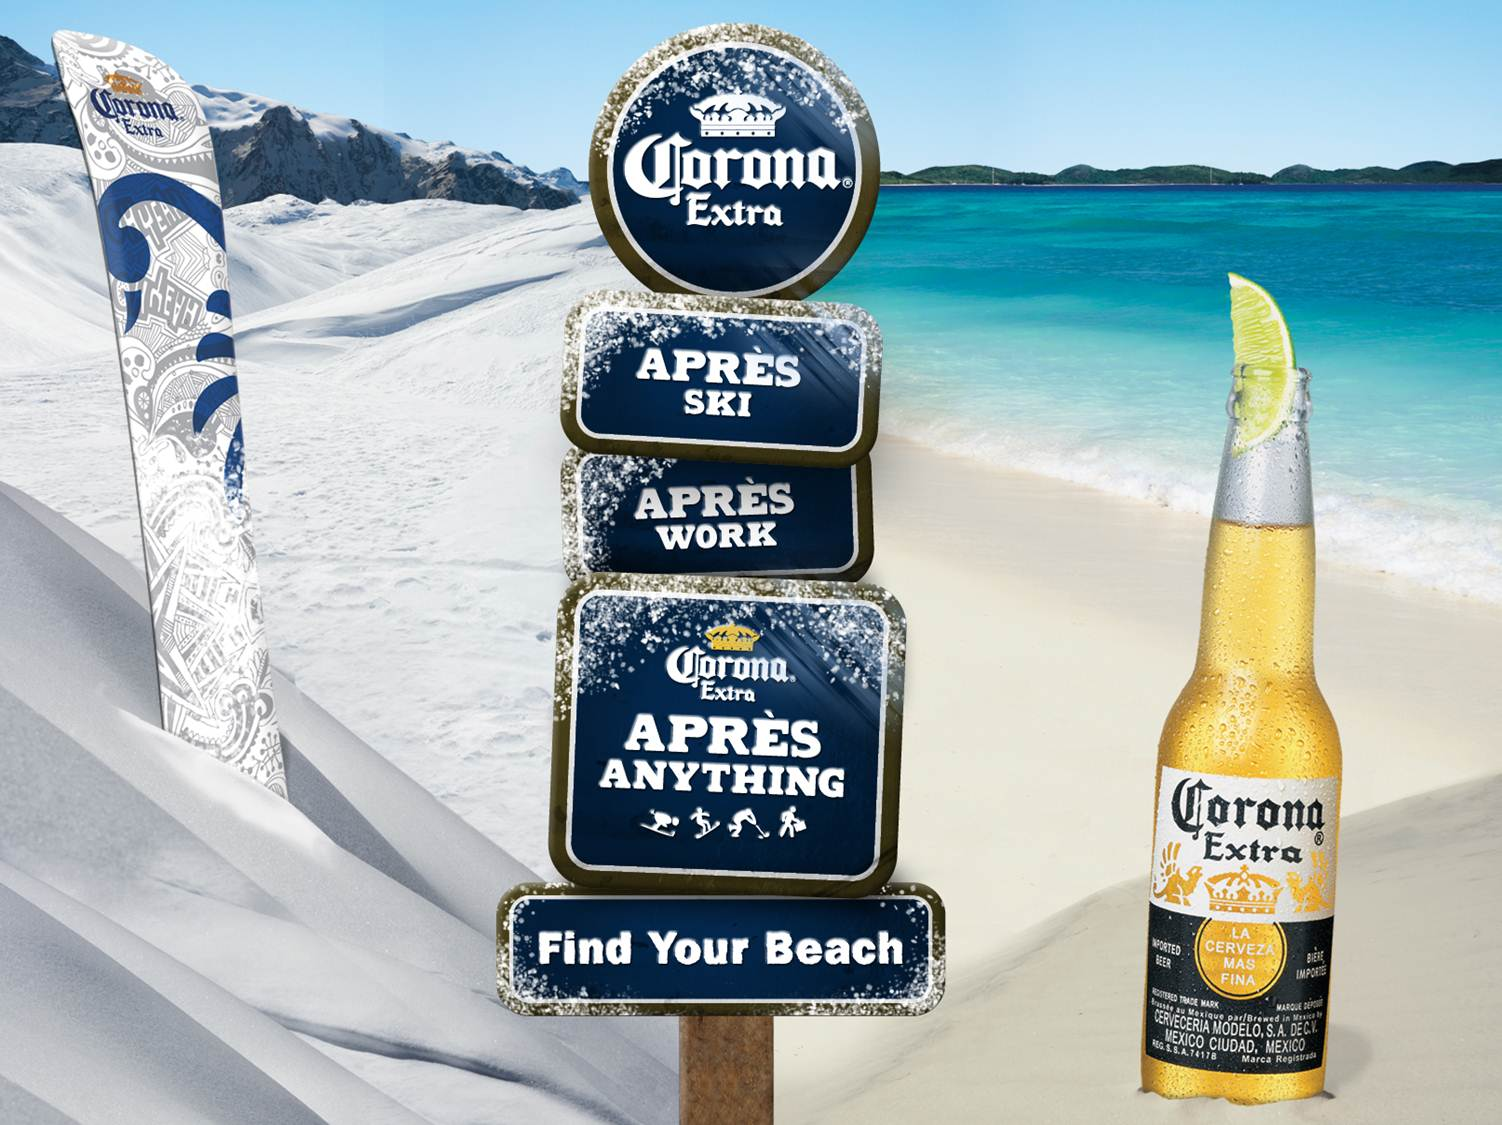 Corona Light Goes After Middle-Age Beer Drinkers With Taste Pitch